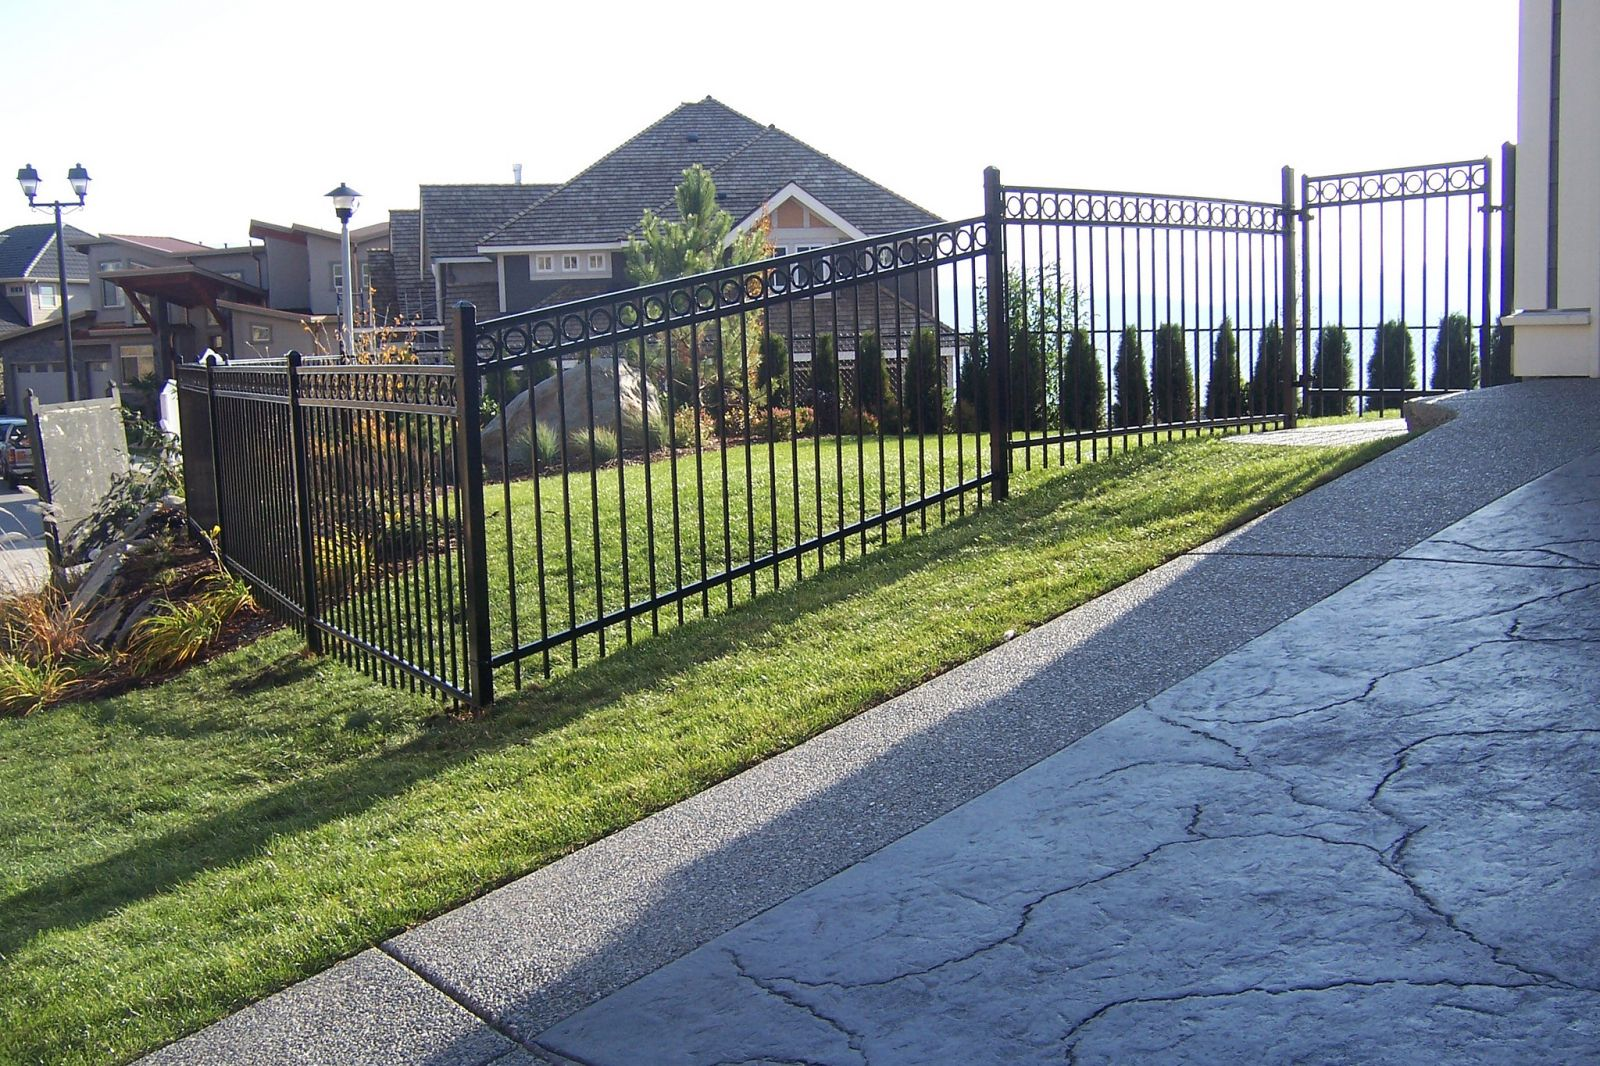 Ornamental iron fence around a yard in the Fraser Valley